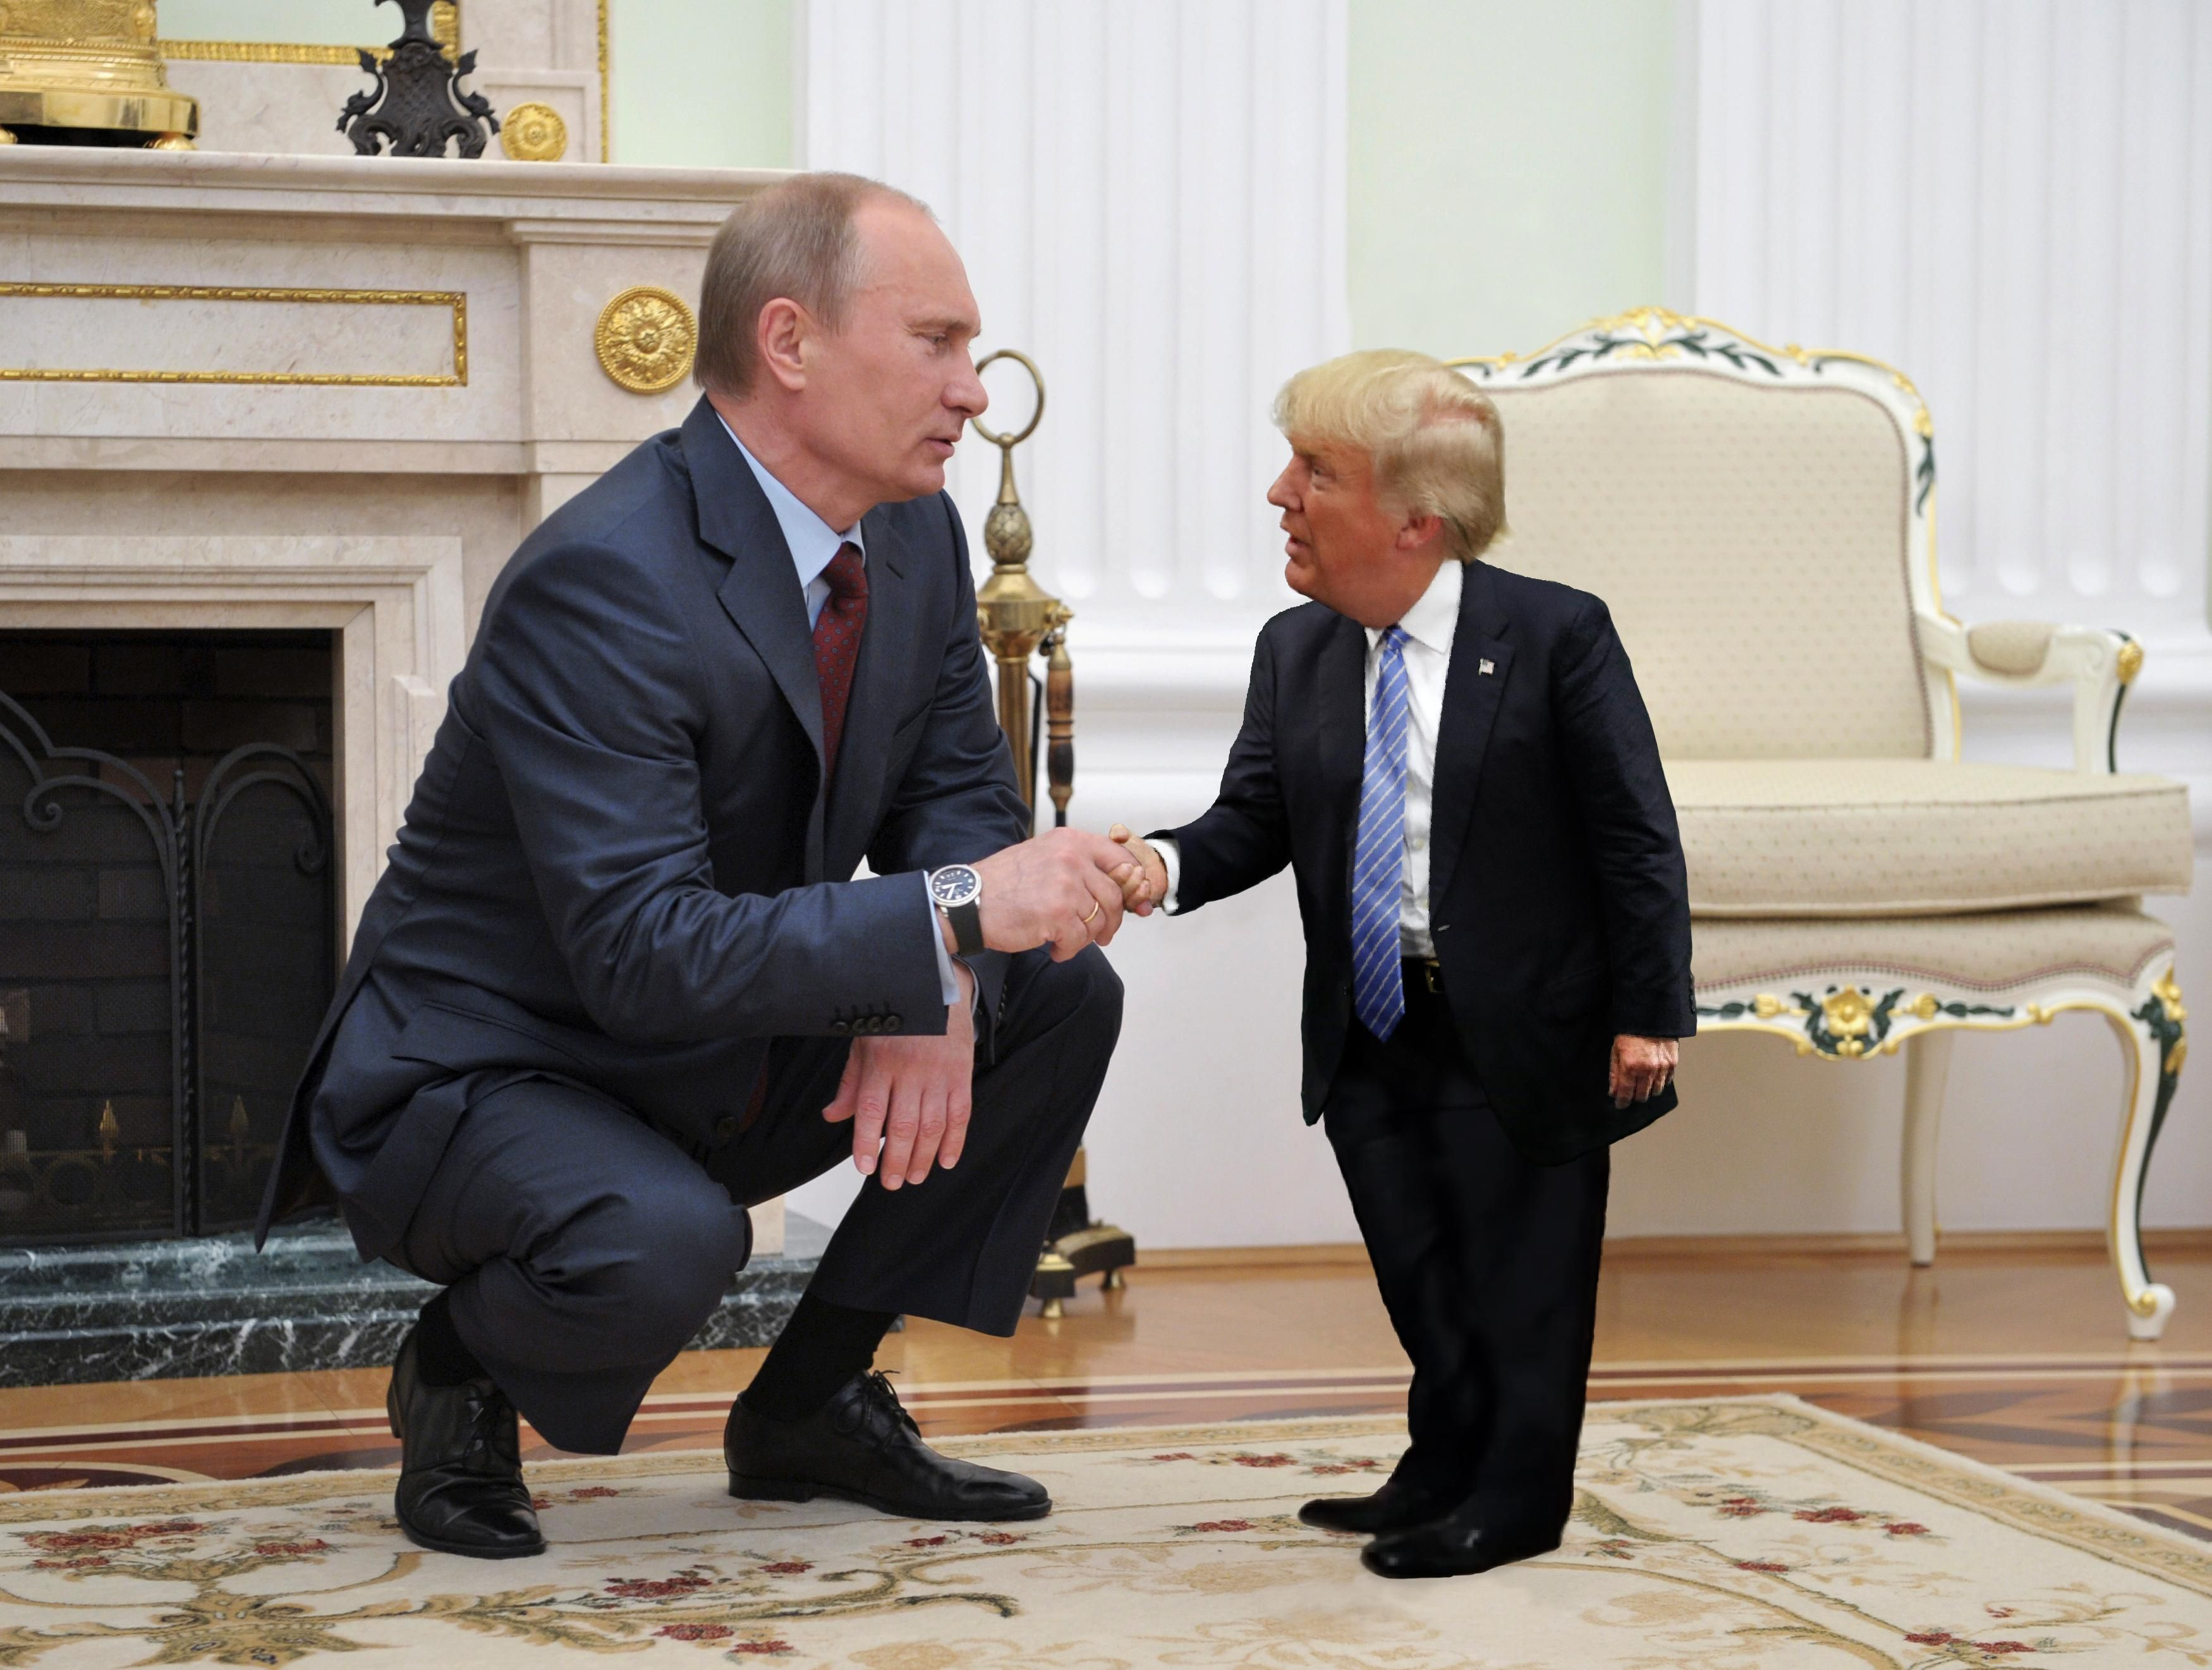 Putin Became President Of Russia Only 8 Years After The